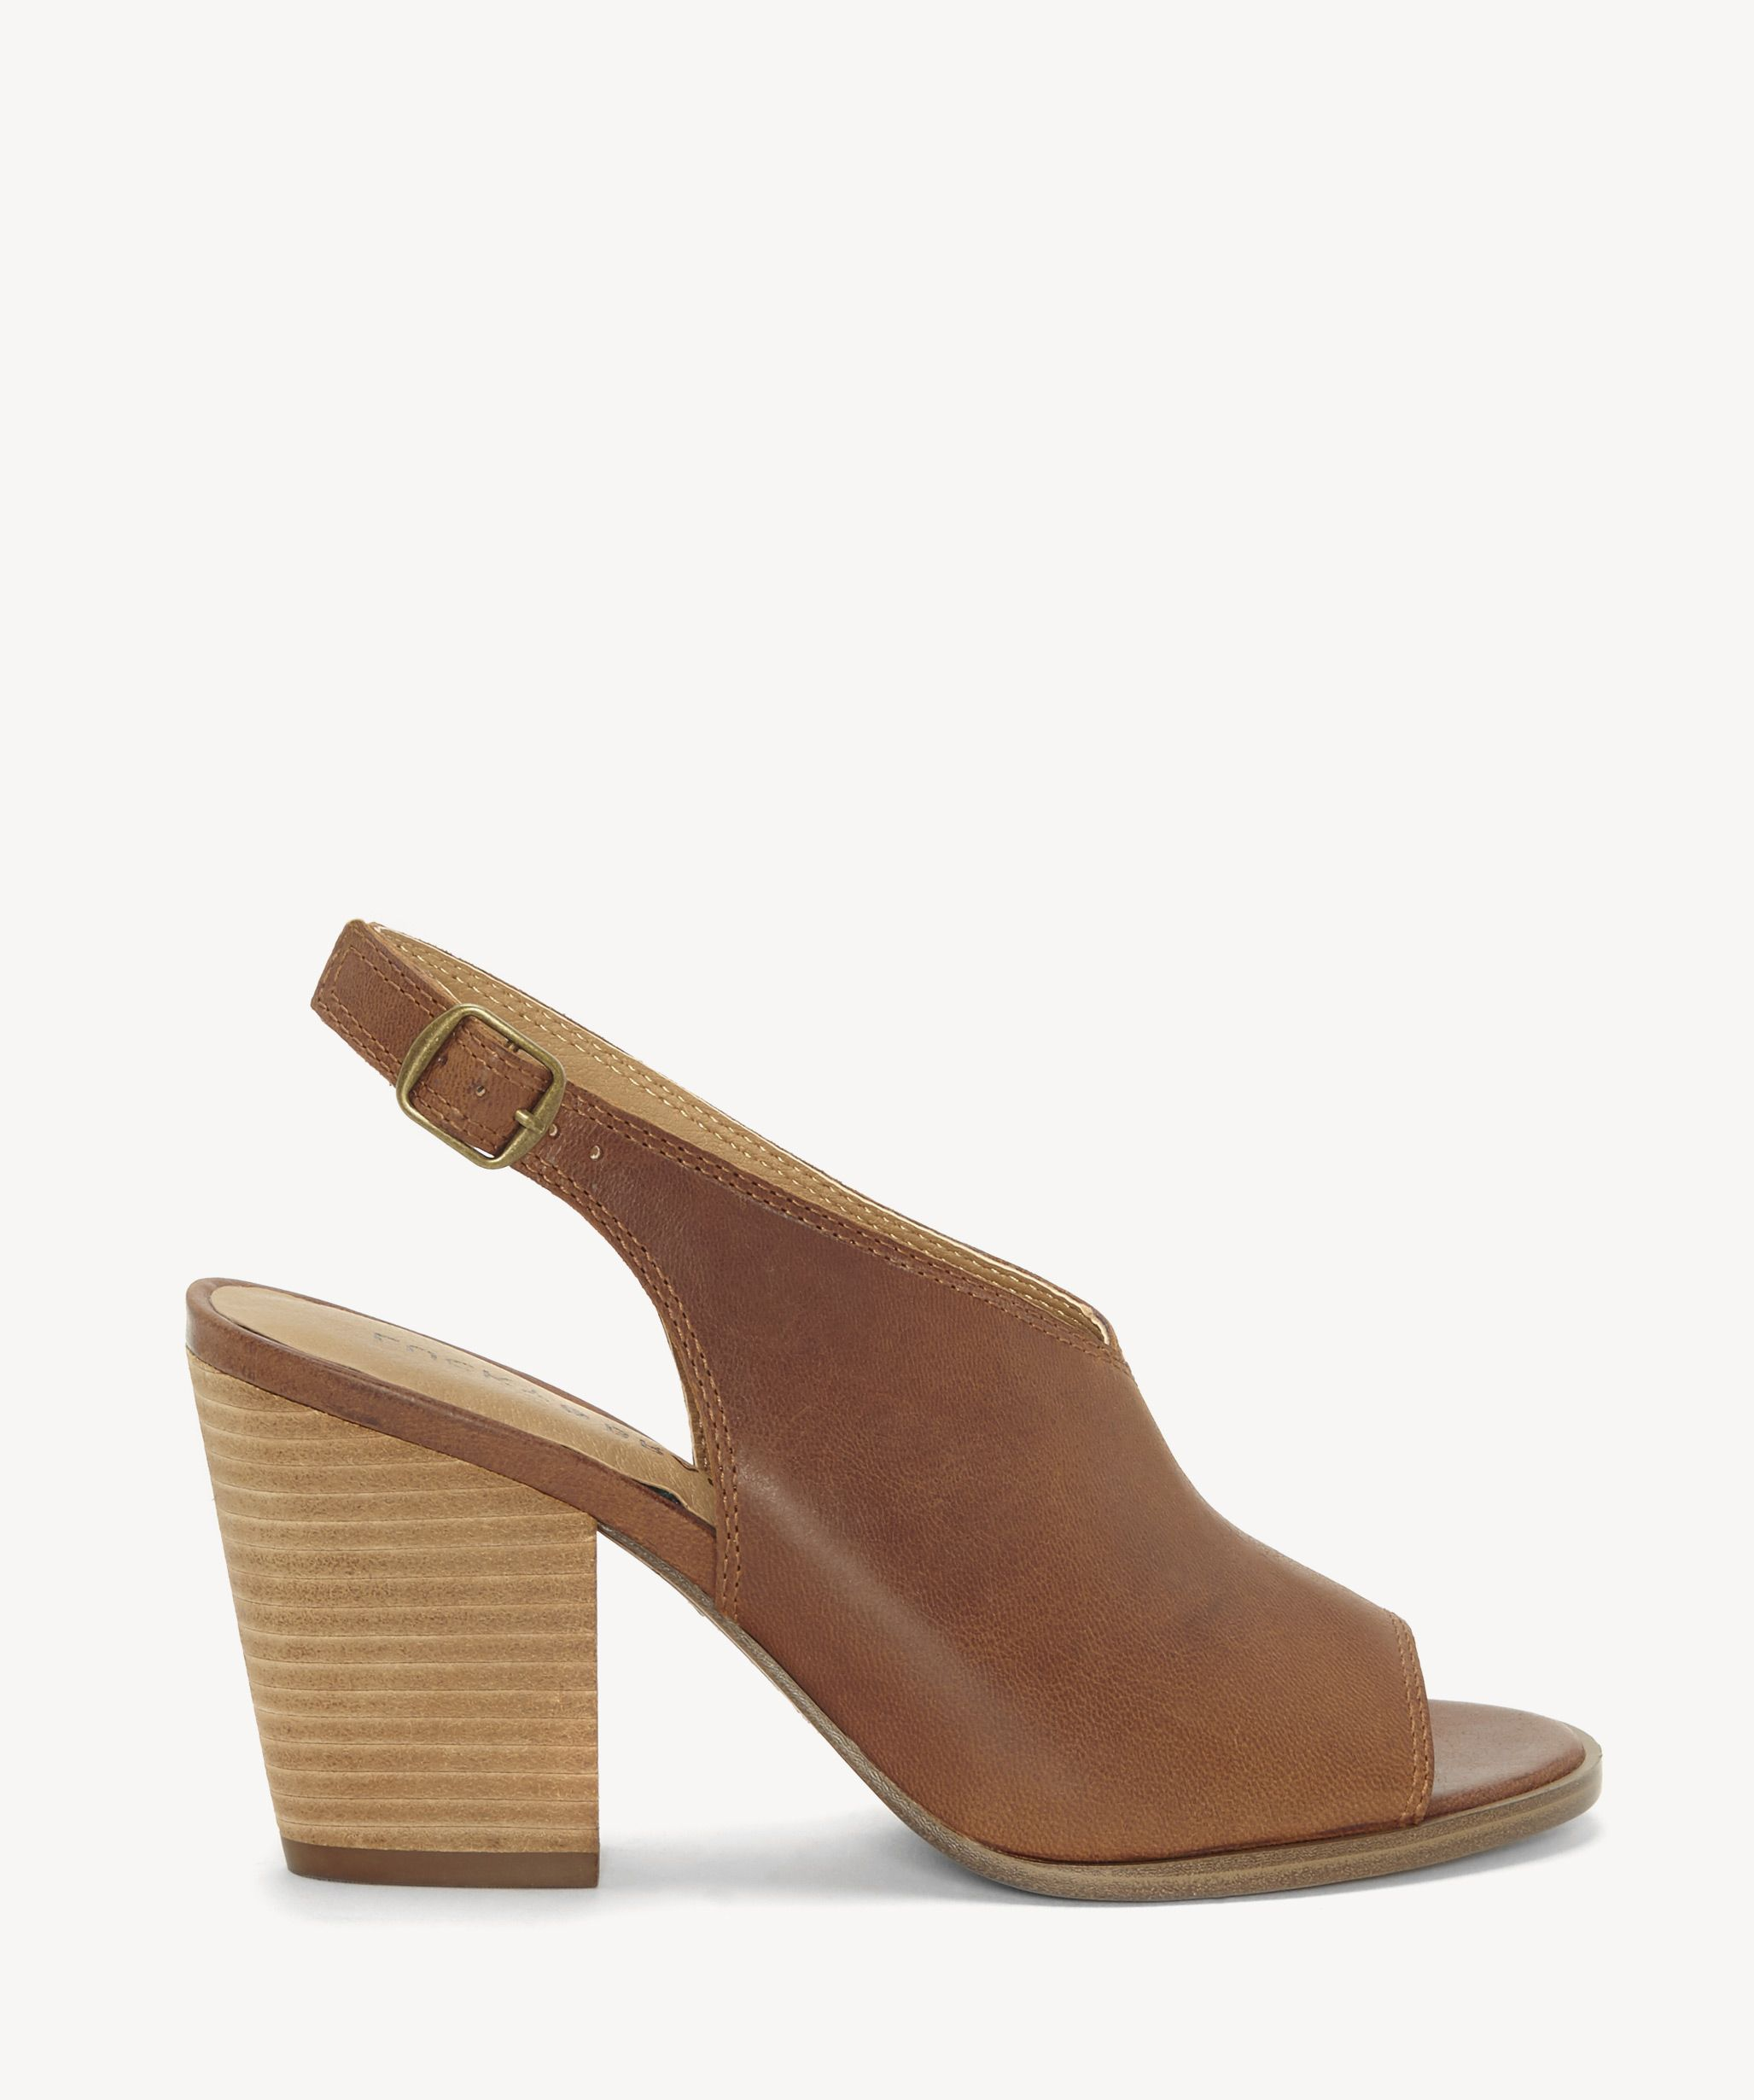 20fea85f77c Lucky Brand Women s Ovrandie Slingback Sandals In Color  Toffee